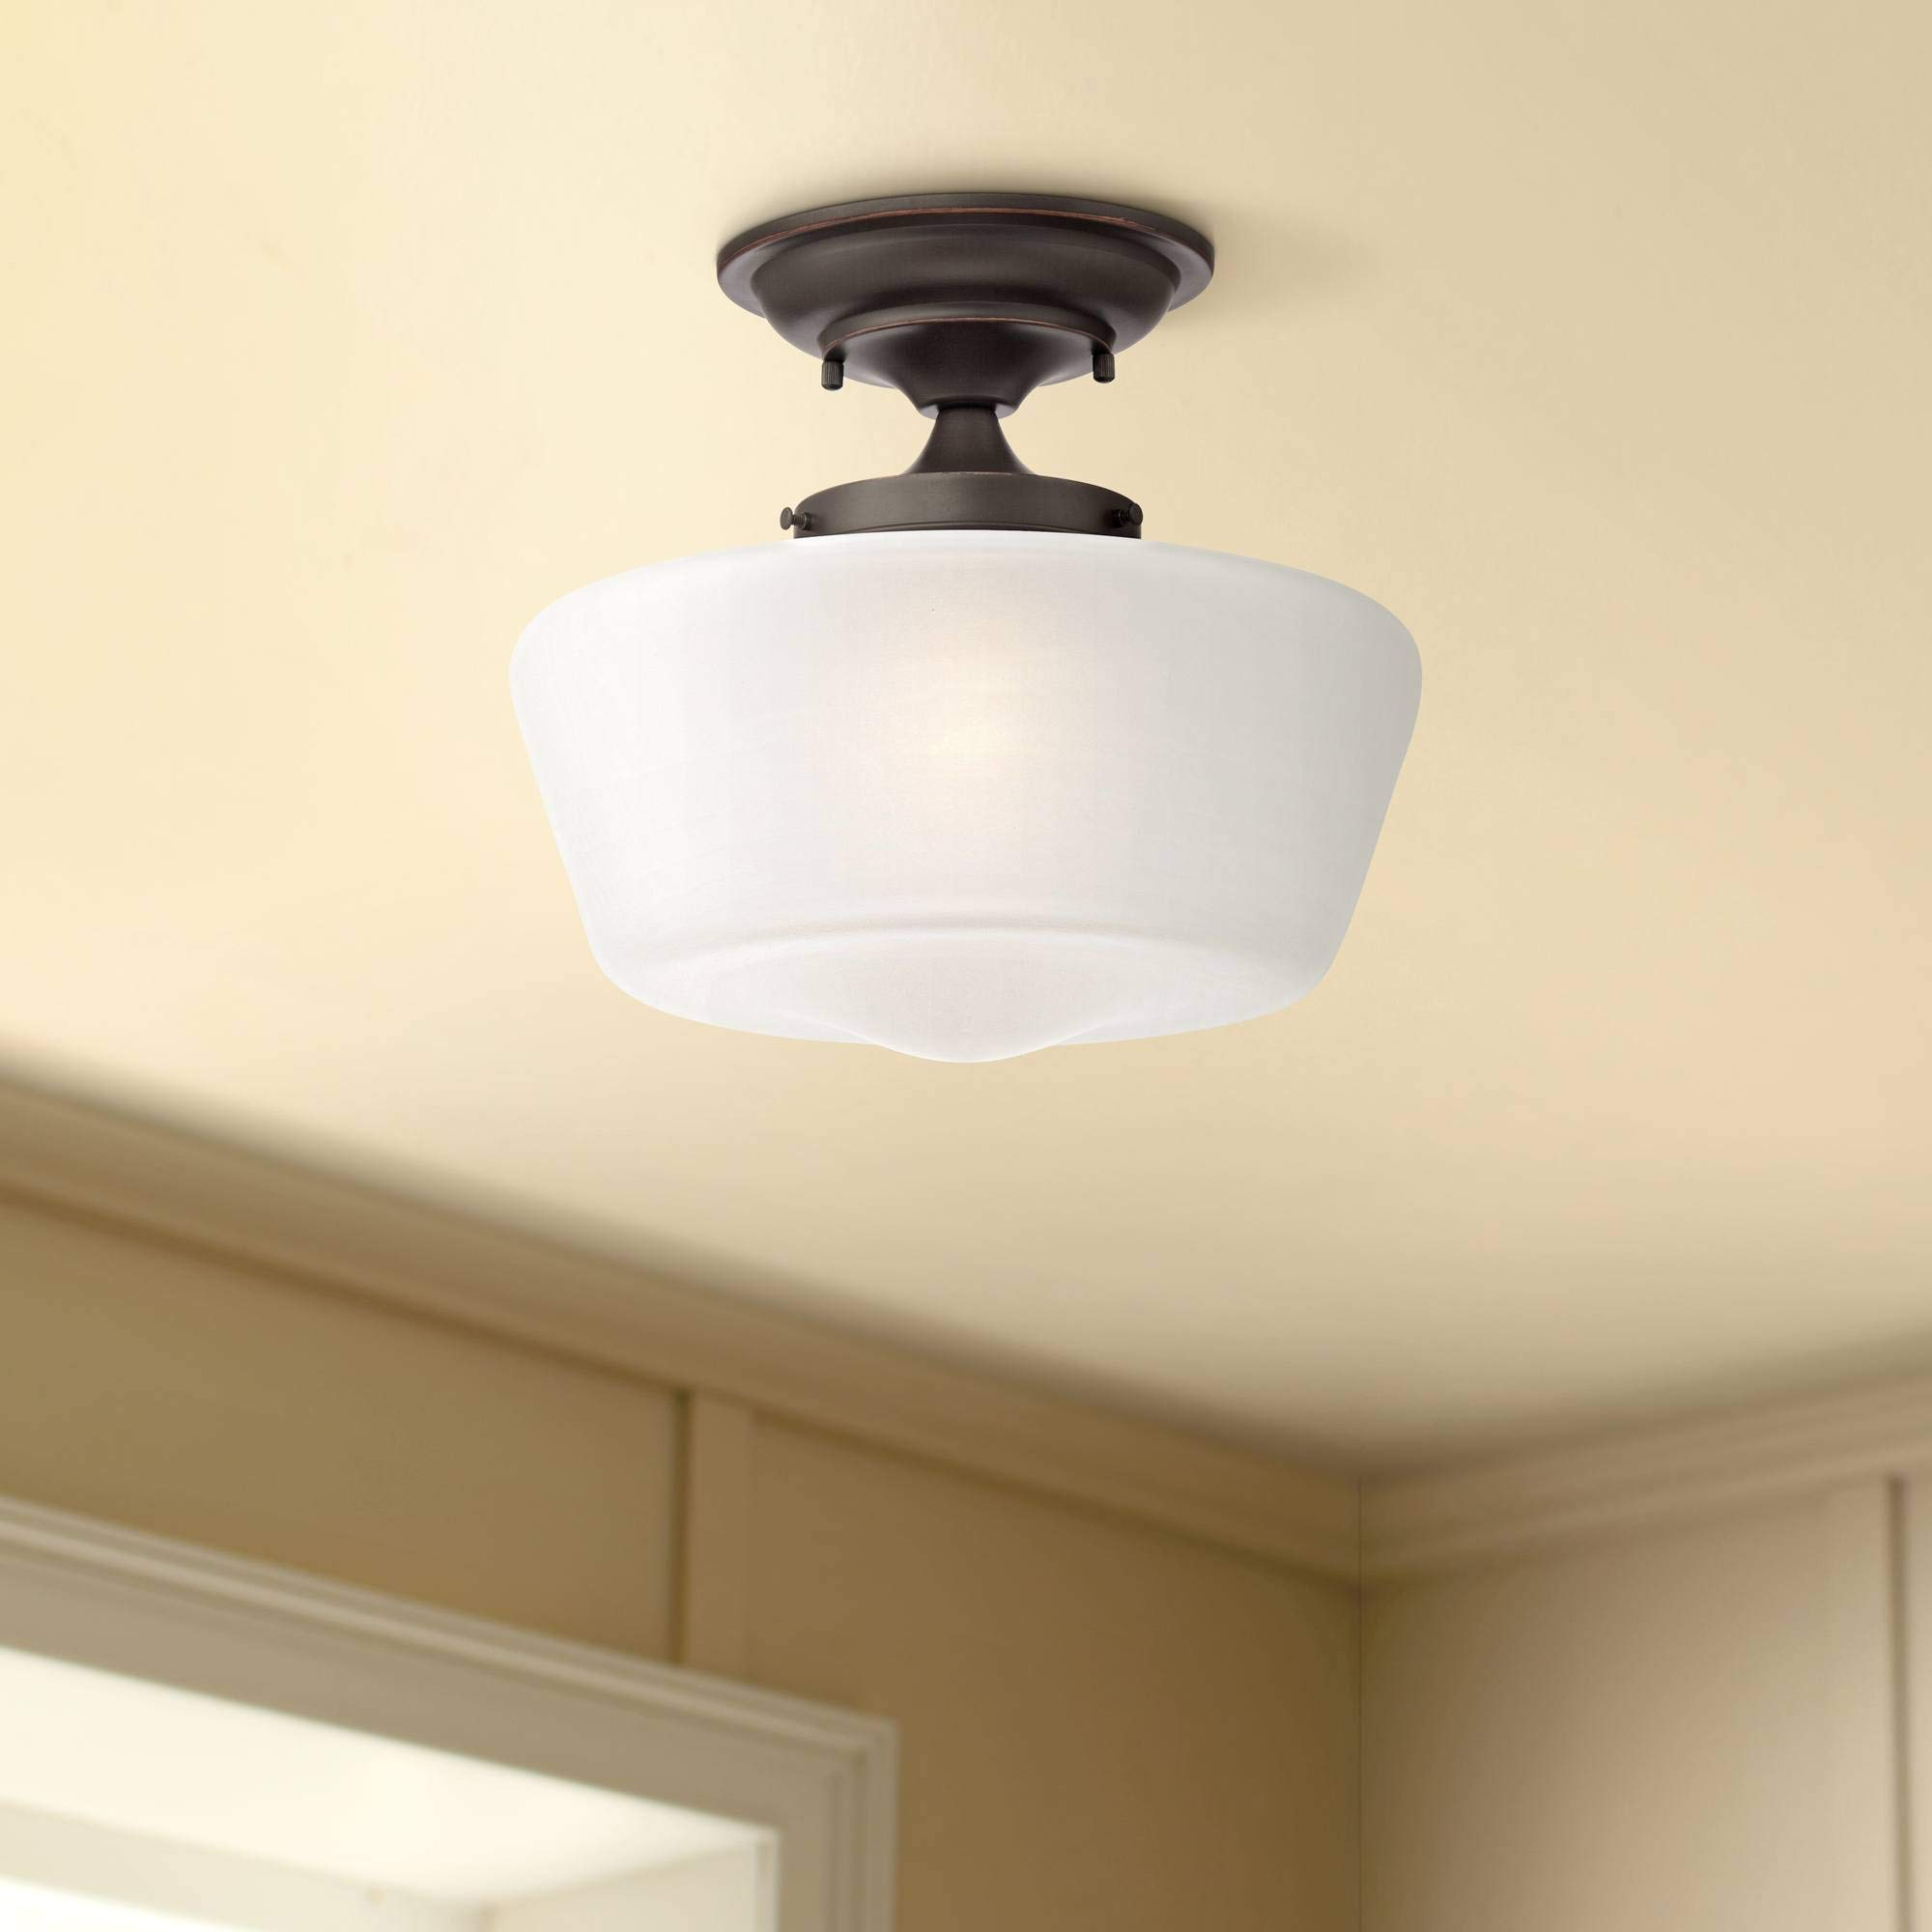 Schoolhouse floating ceiling light semi flush mount fixture bronze 12 white glass for bedroom kitchen regency hill ceiling pendant fixtures amazon